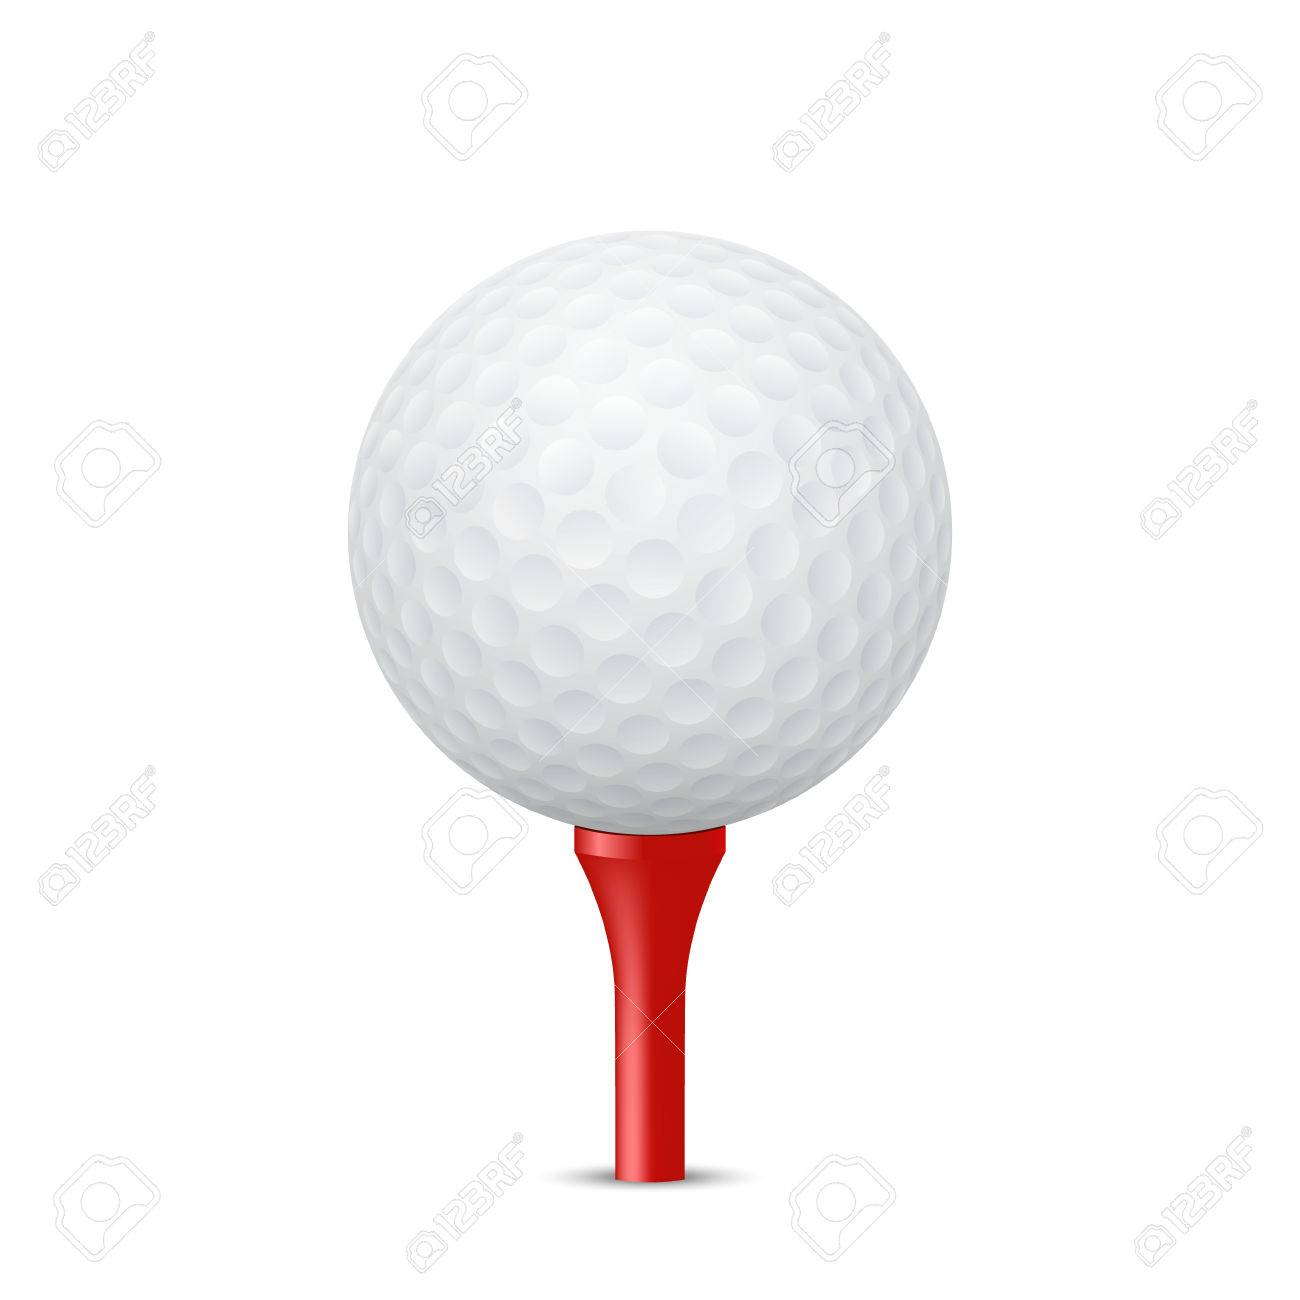 Golf ball on a red tee, isolated. Vector illustration. - 38547458